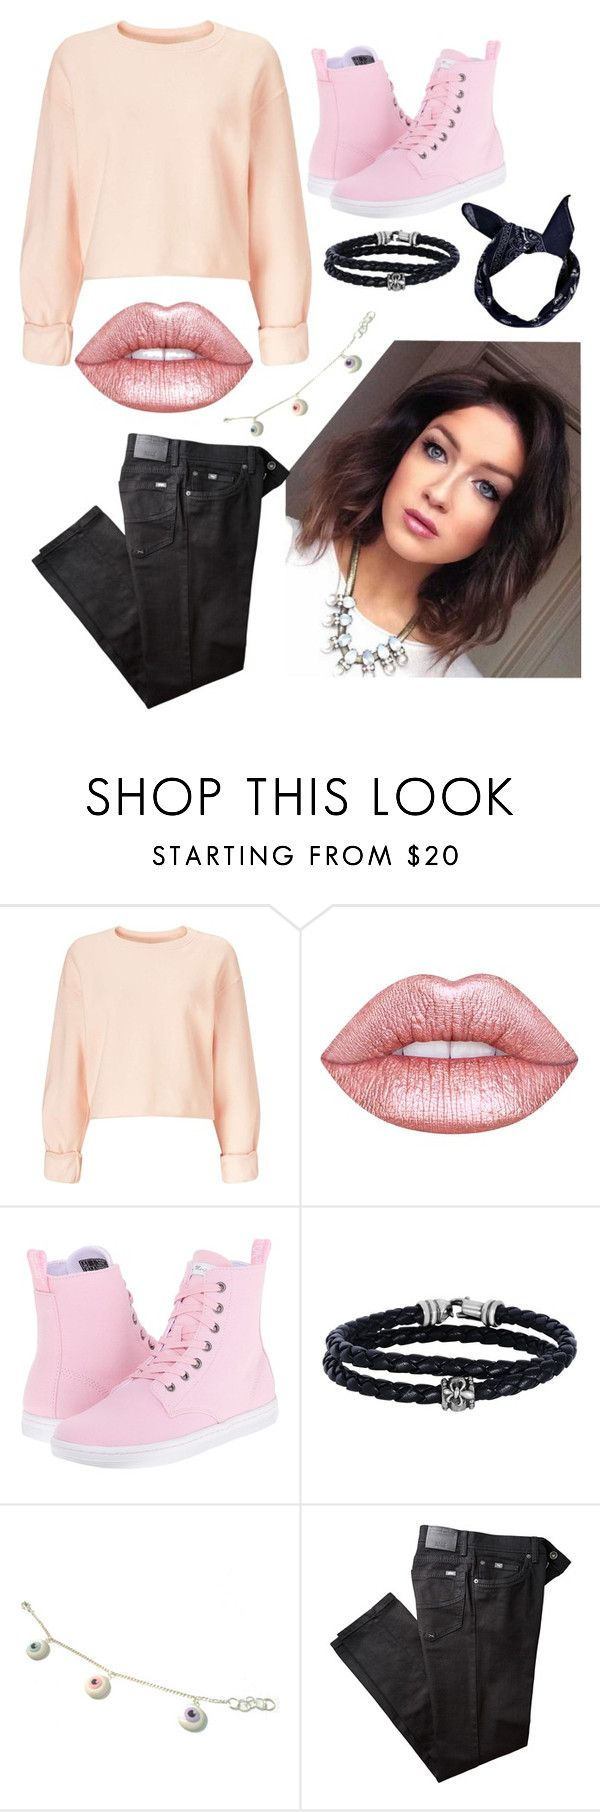 """""""Light Pink and Black"""" by milkyspill ❤ liked on Polyvore featuring Miss Selfridge, Lime Crime, Dr. Martens, Phillip Gavriel, BRAX and Boohoo"""